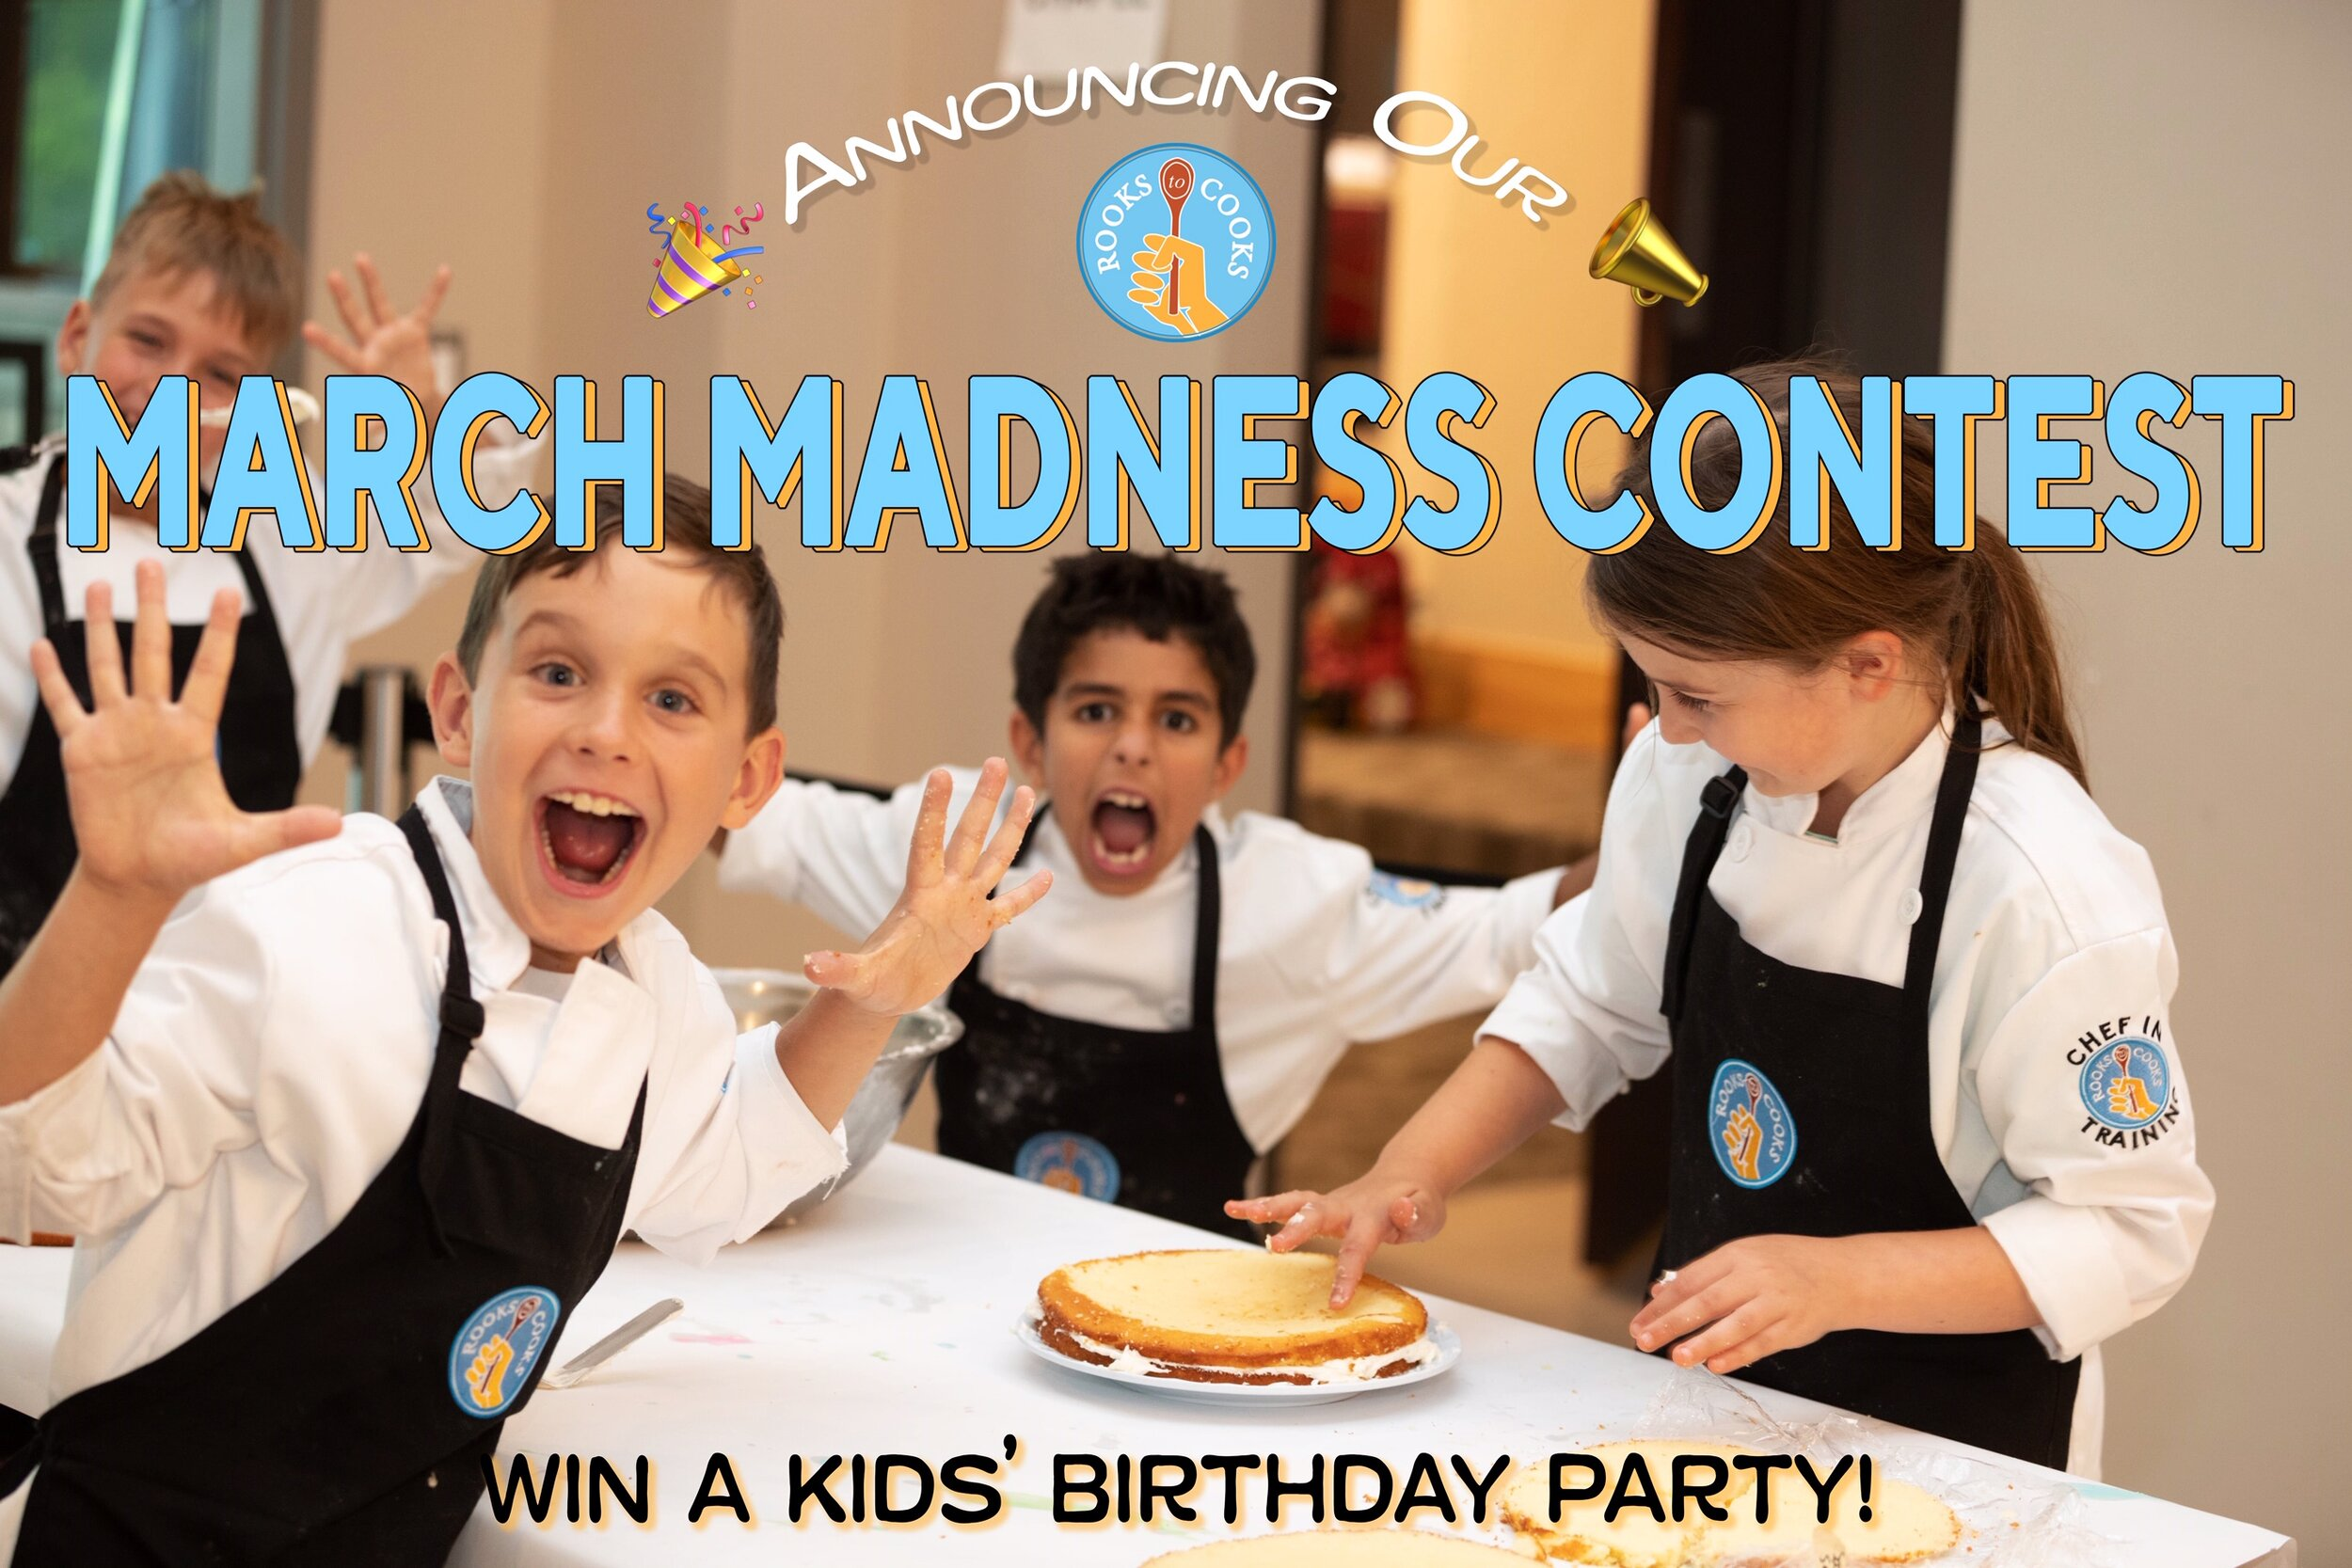 MarchMadness_Contest1.JPG